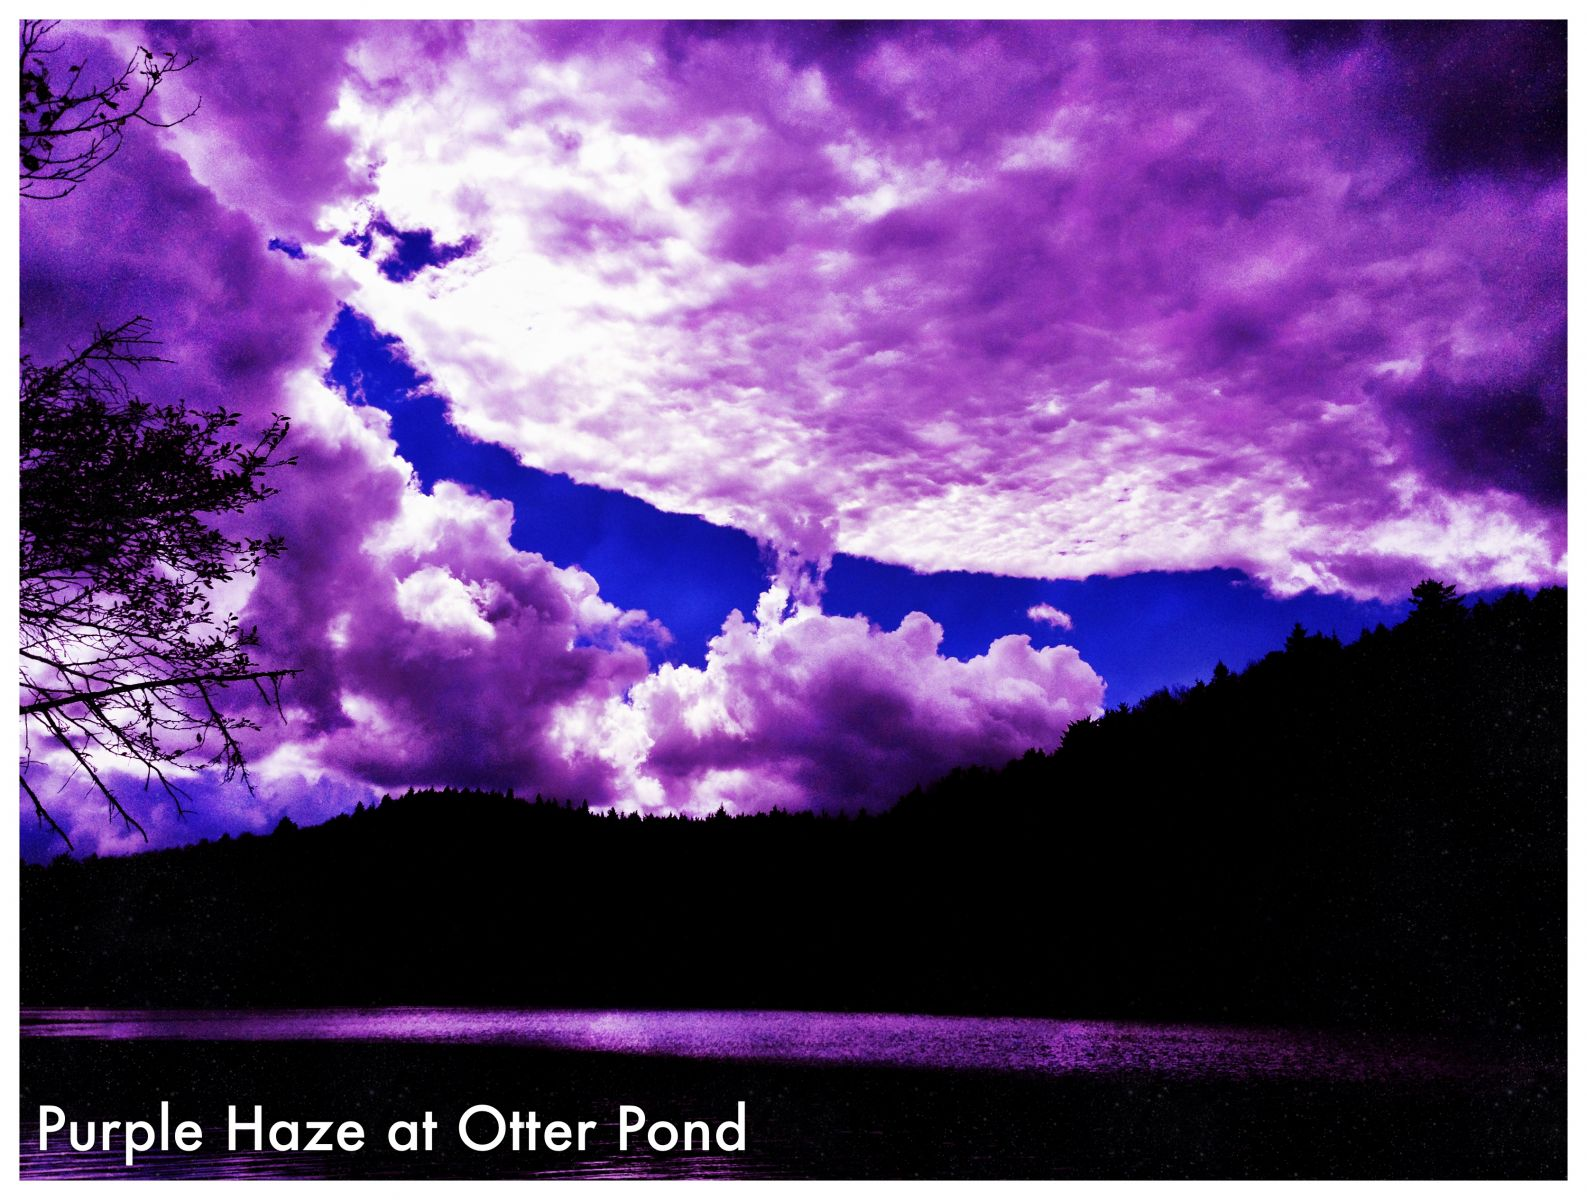 Purple Haze at Otter Pond